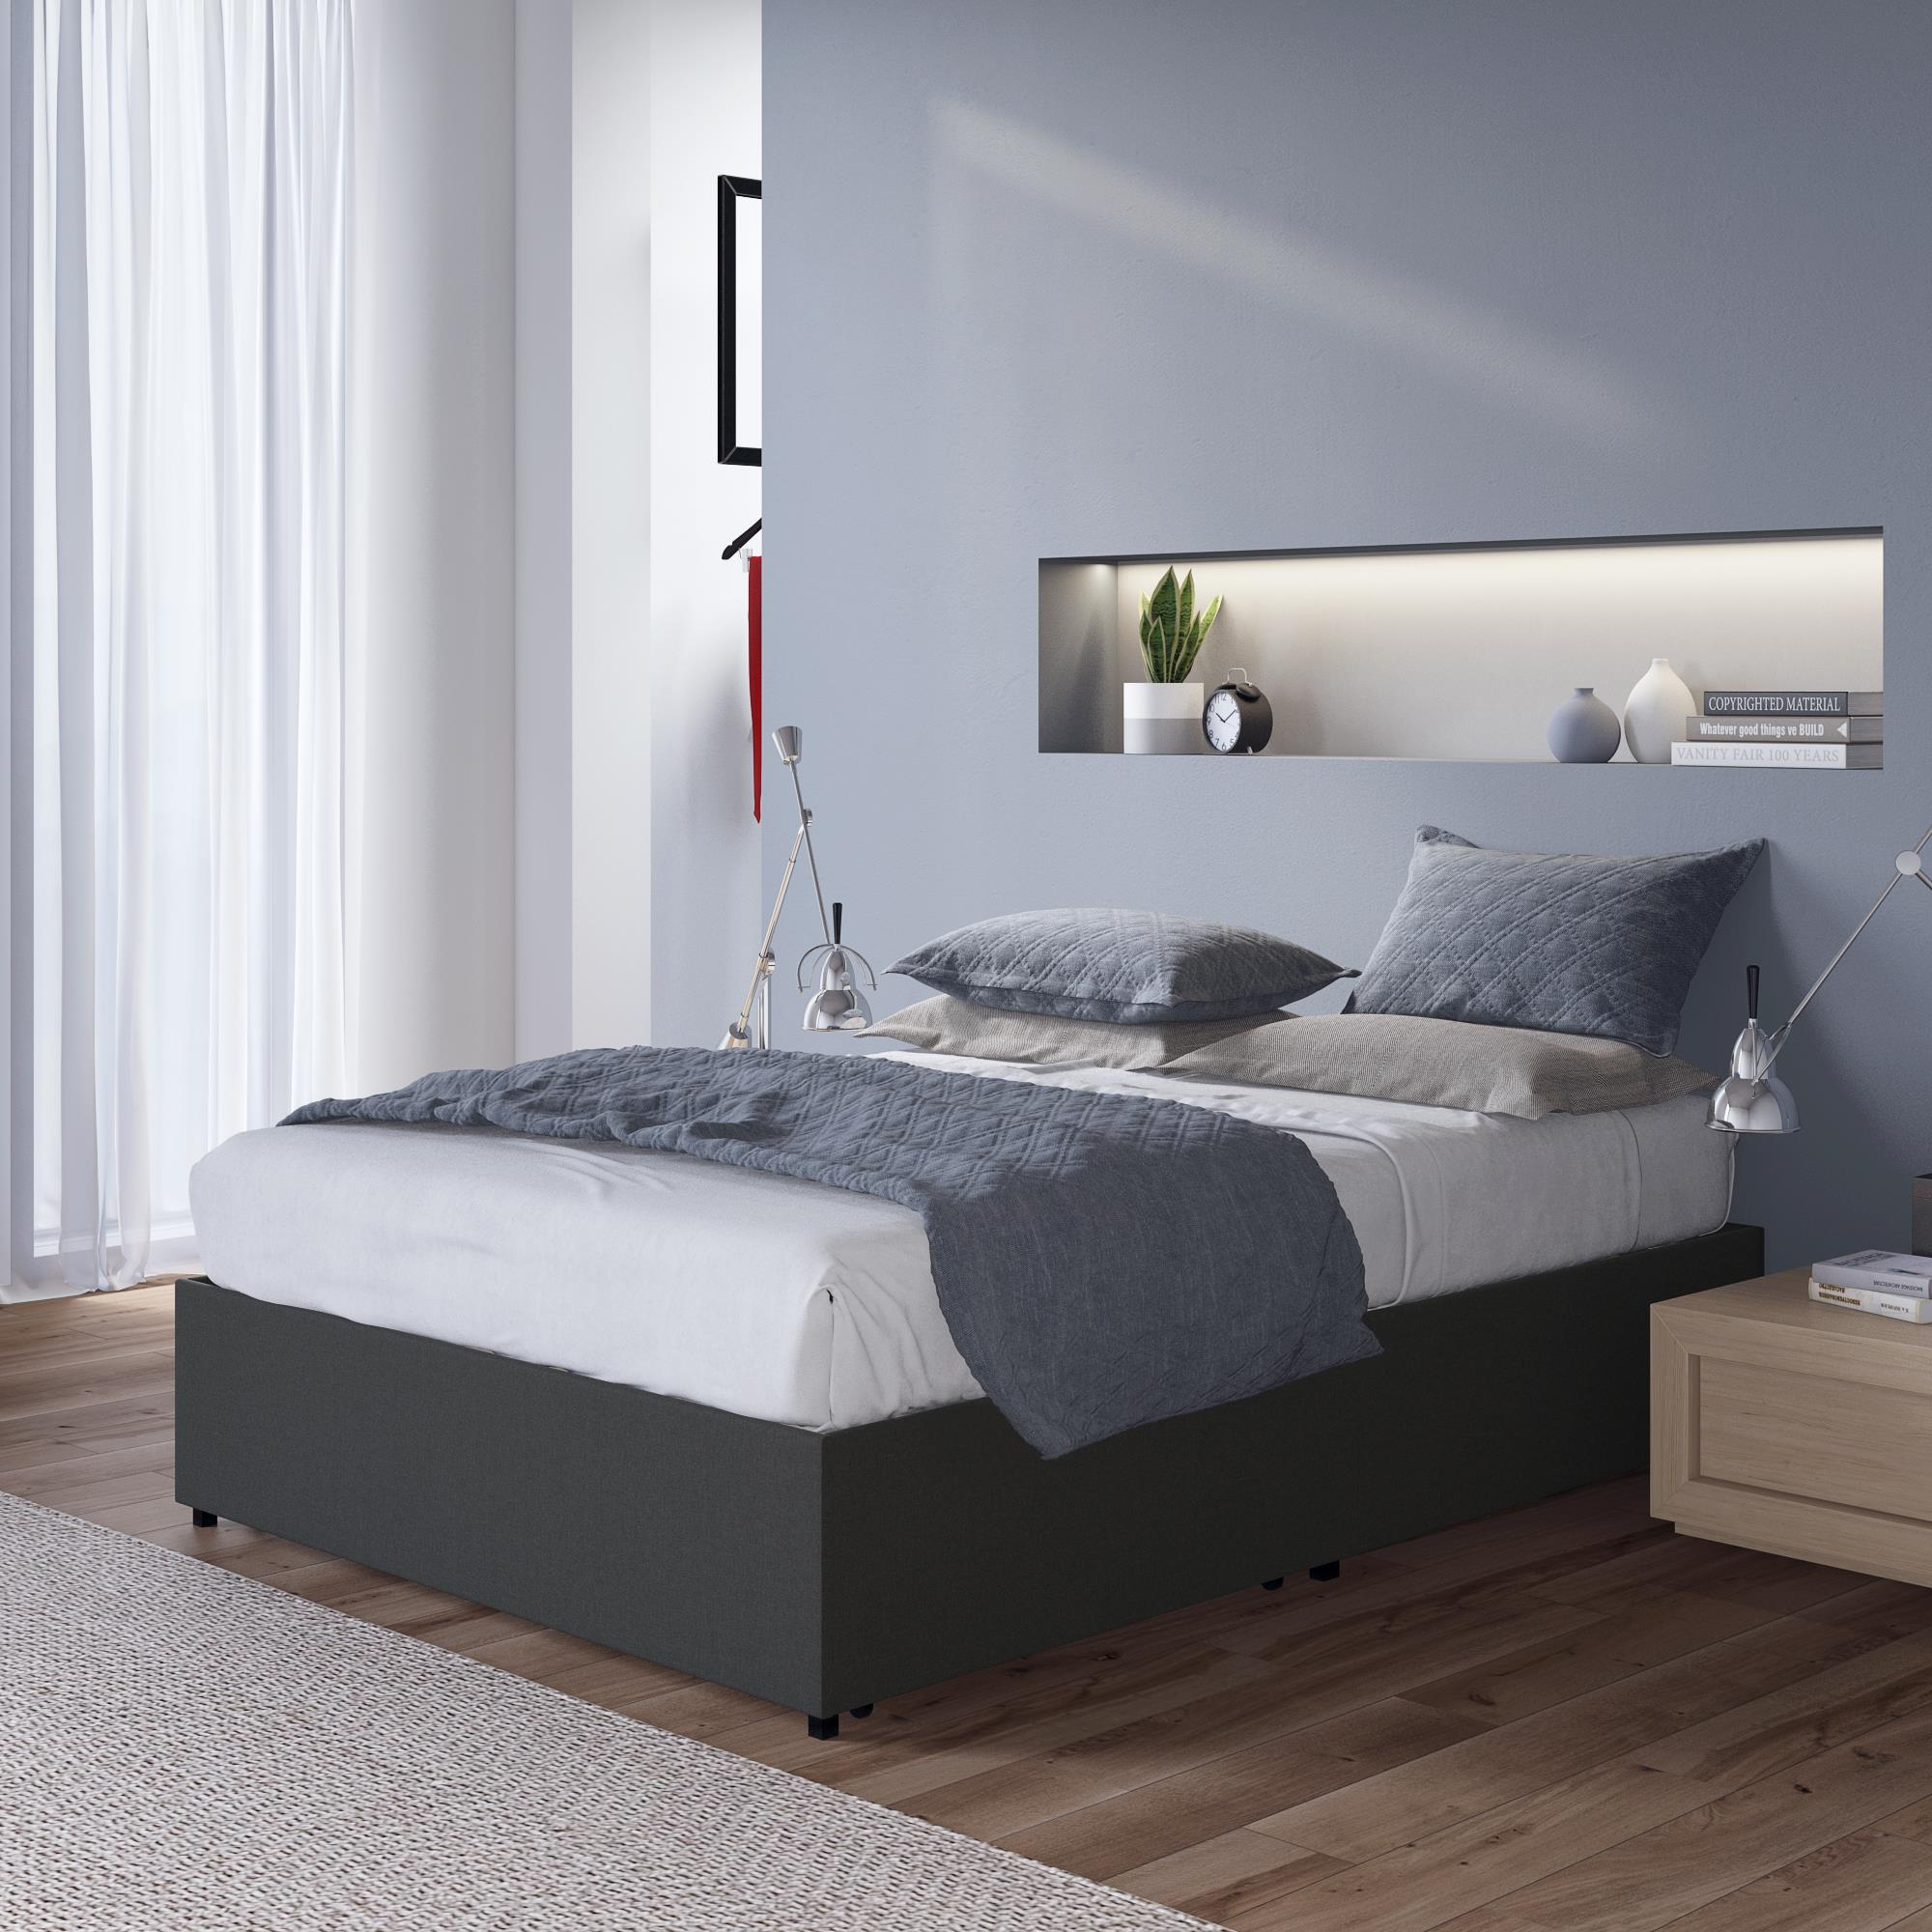 Dhp Maven Upholstered Platform Bed Full Size Frame Gray